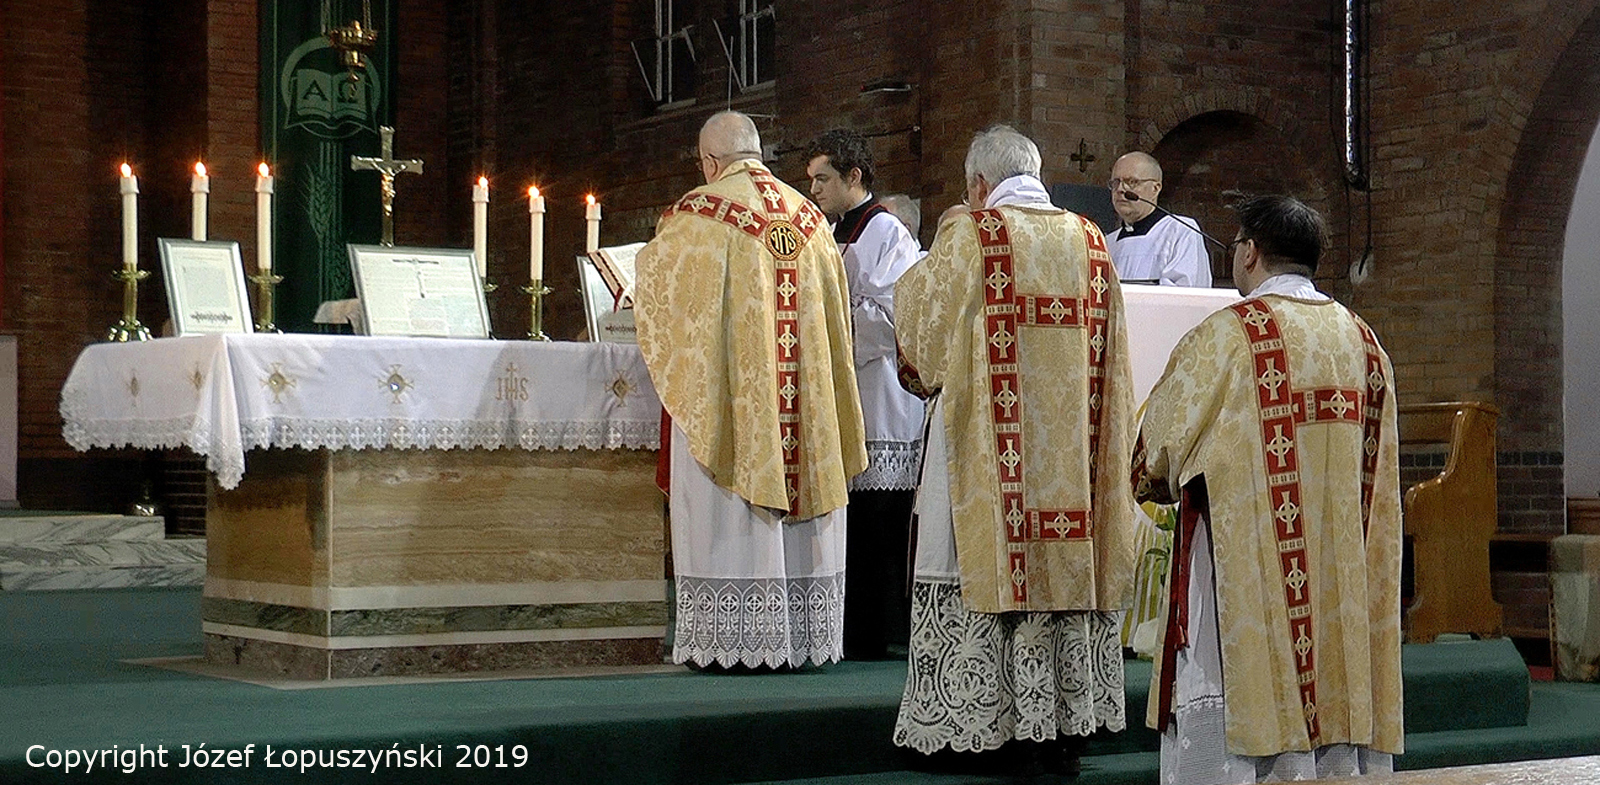 Wolverhampton High Mass for Chair of St Peter